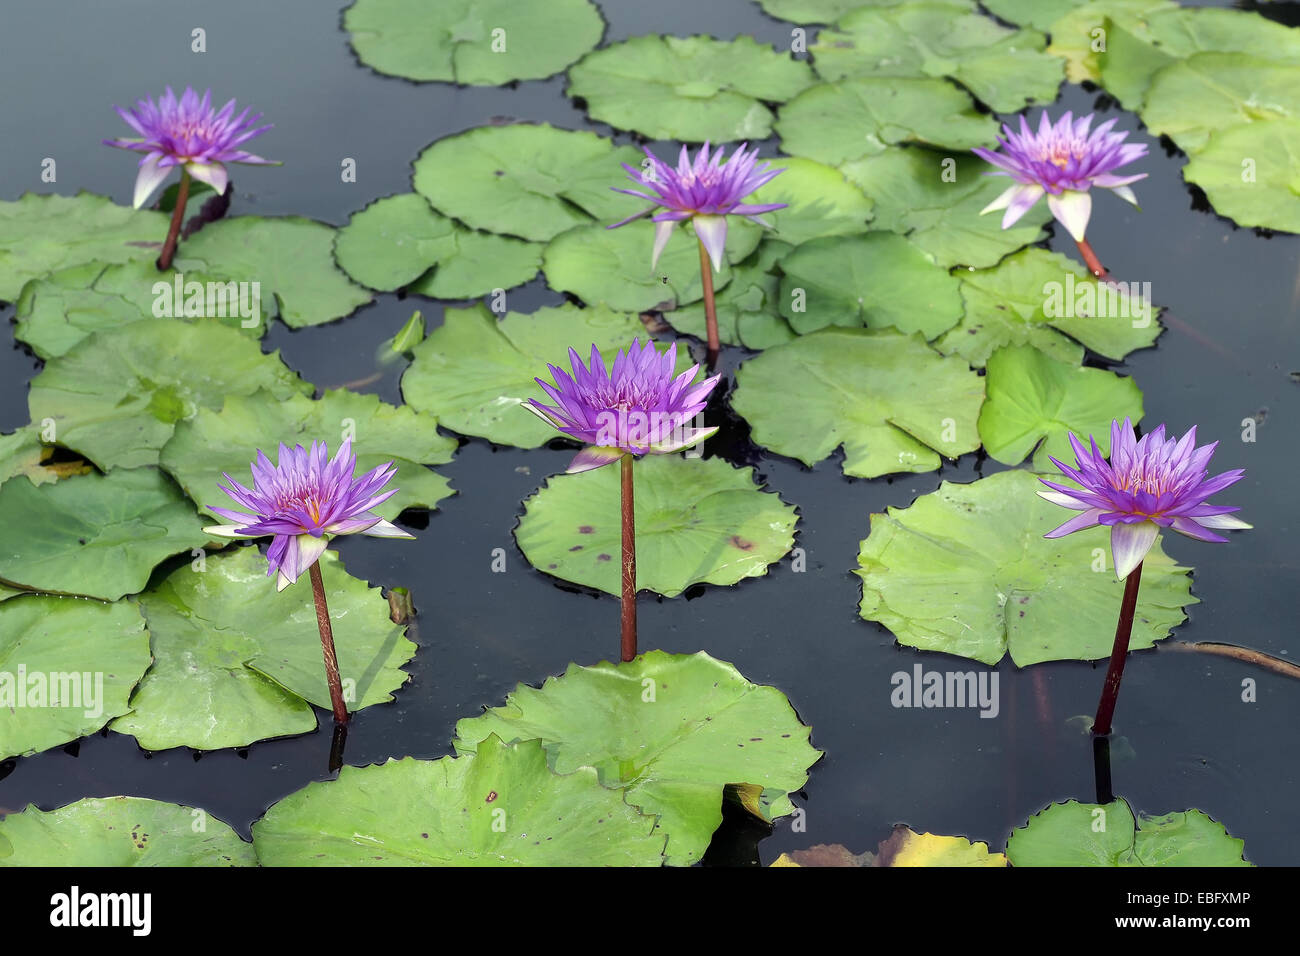 Beautiful lotus flower in the pond stock photo 75952934 alamy beautiful lotus flower in the pond izmirmasajfo